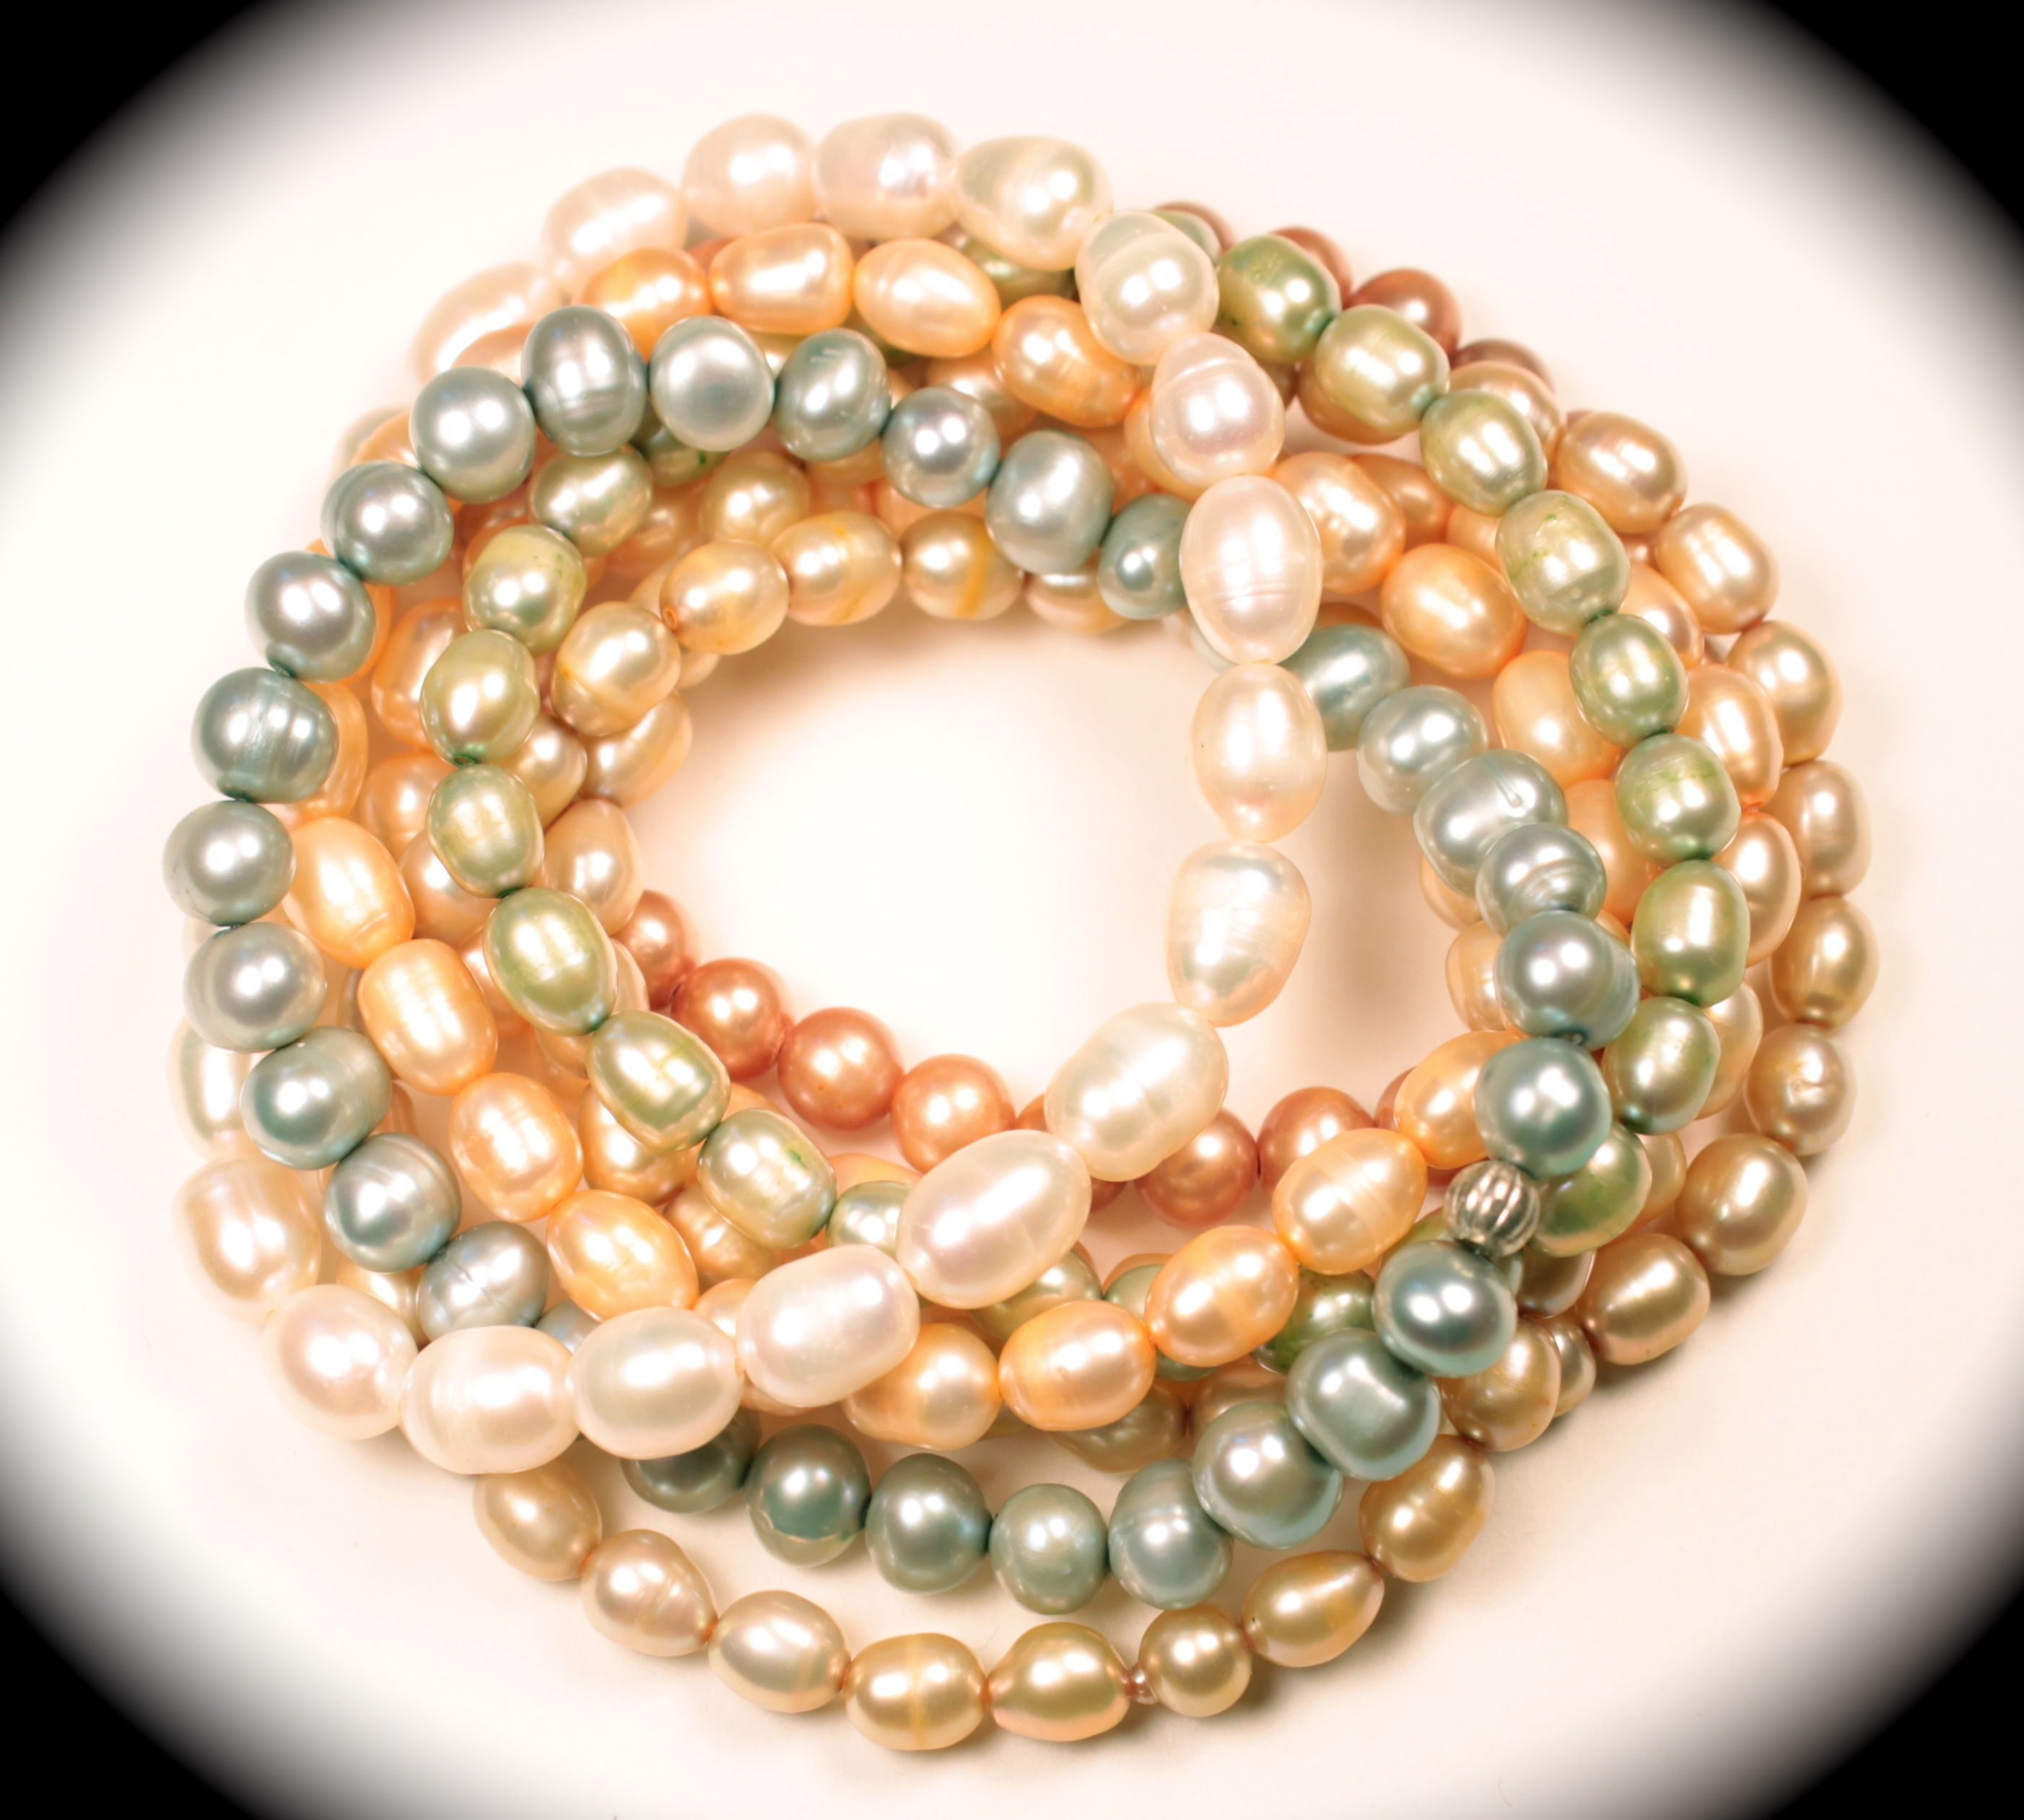 nuts cfm buy unwrapped shimmer beads mix oh spring pastel candy bulk pearls pearl